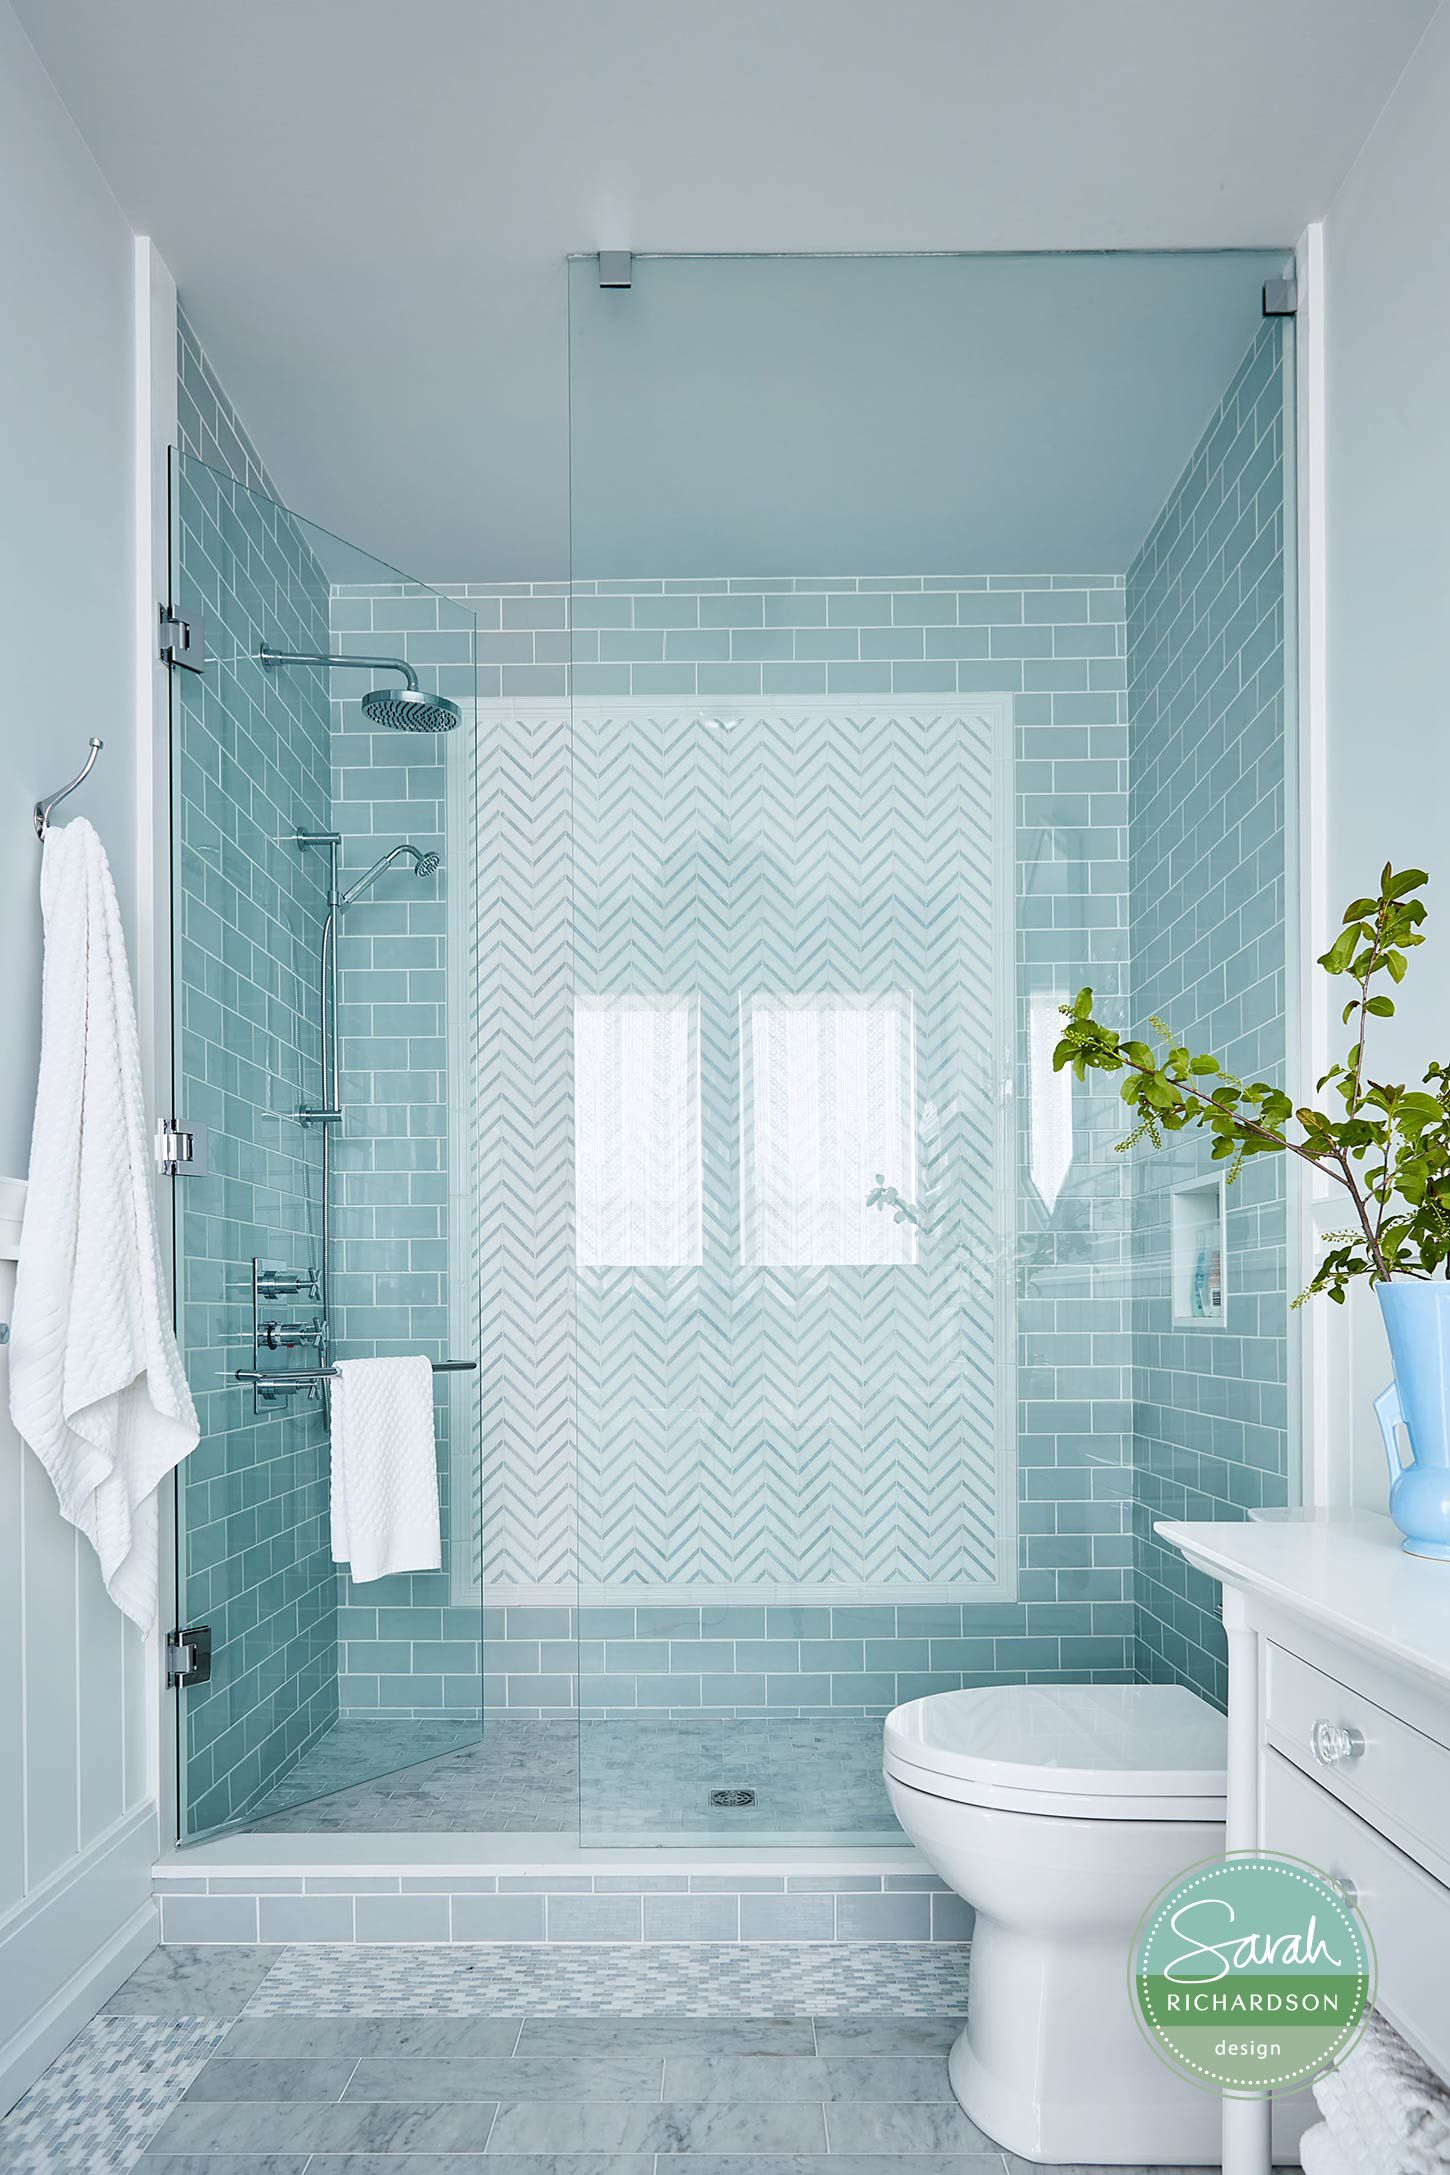 Robin S Bathroom As Seen On Hgtv Canada S Sarah Off The Grid By Sarah Richardson Design Bathroom Tile Designs Simple Bathroom Designs Bathroom Remodel Master